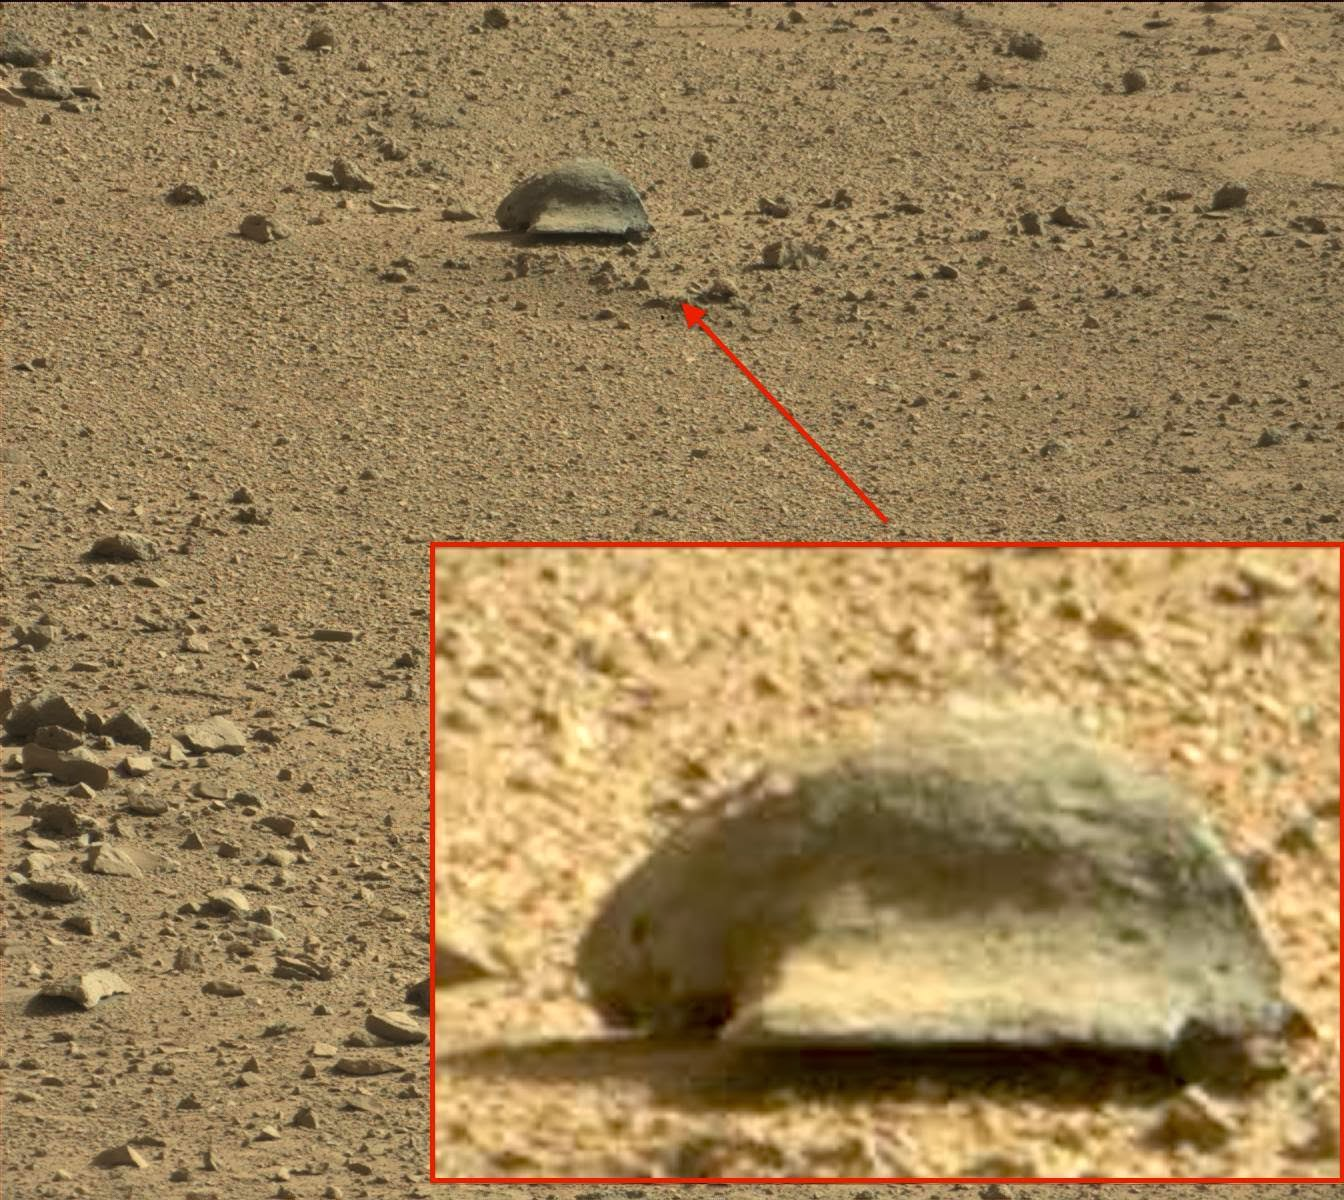 UFO SIGHTINGS DAILY: Tortoise-Like Creature Found By Mars ...